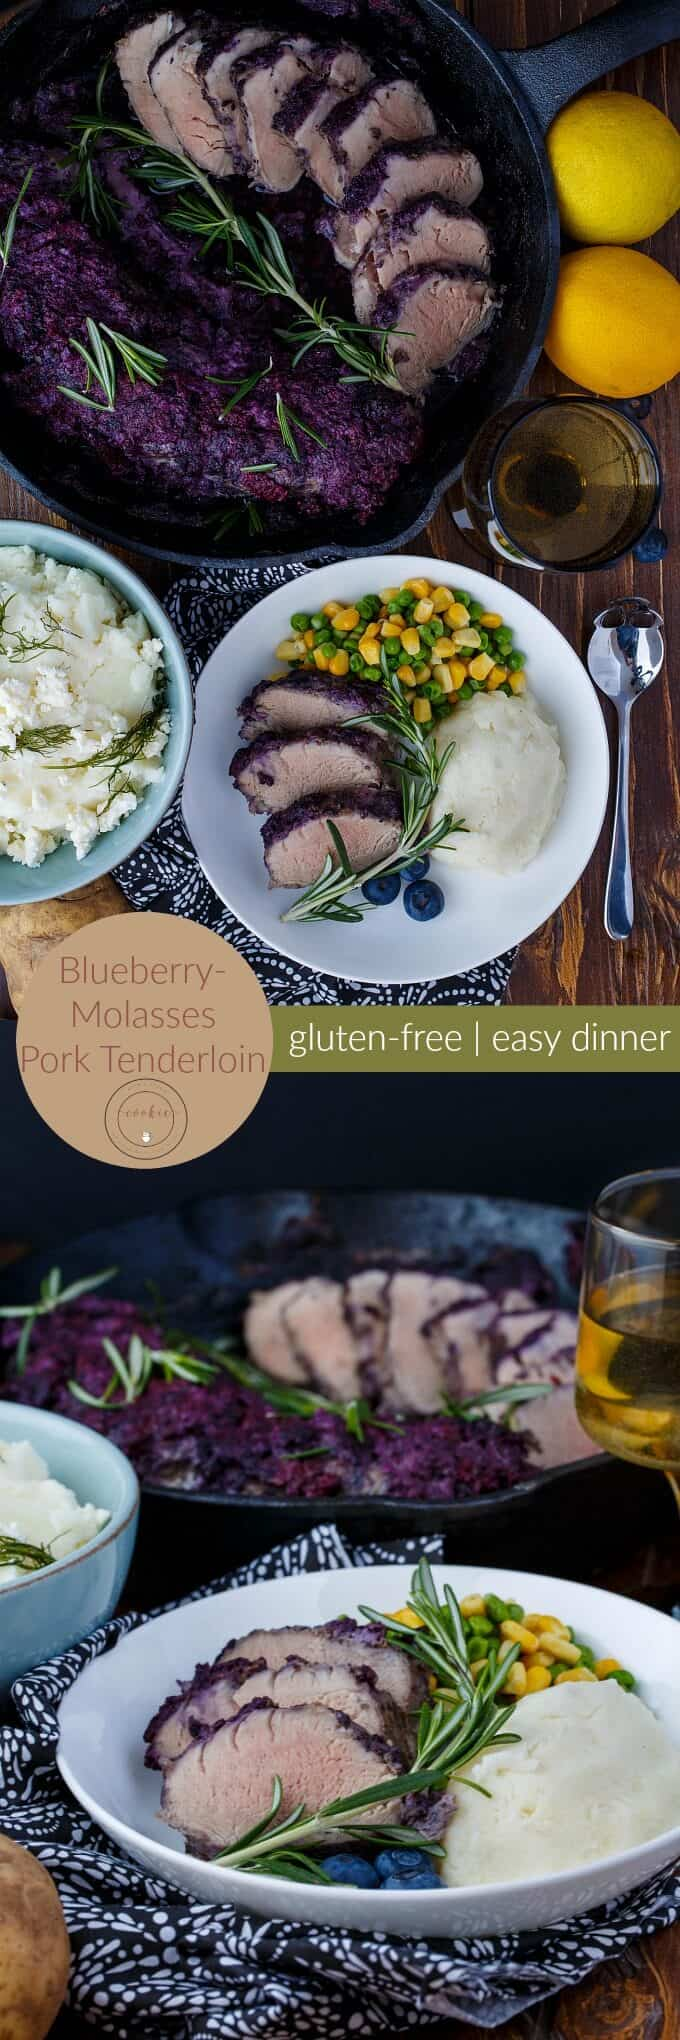 Blueberry Molasses Pork Tenderloin